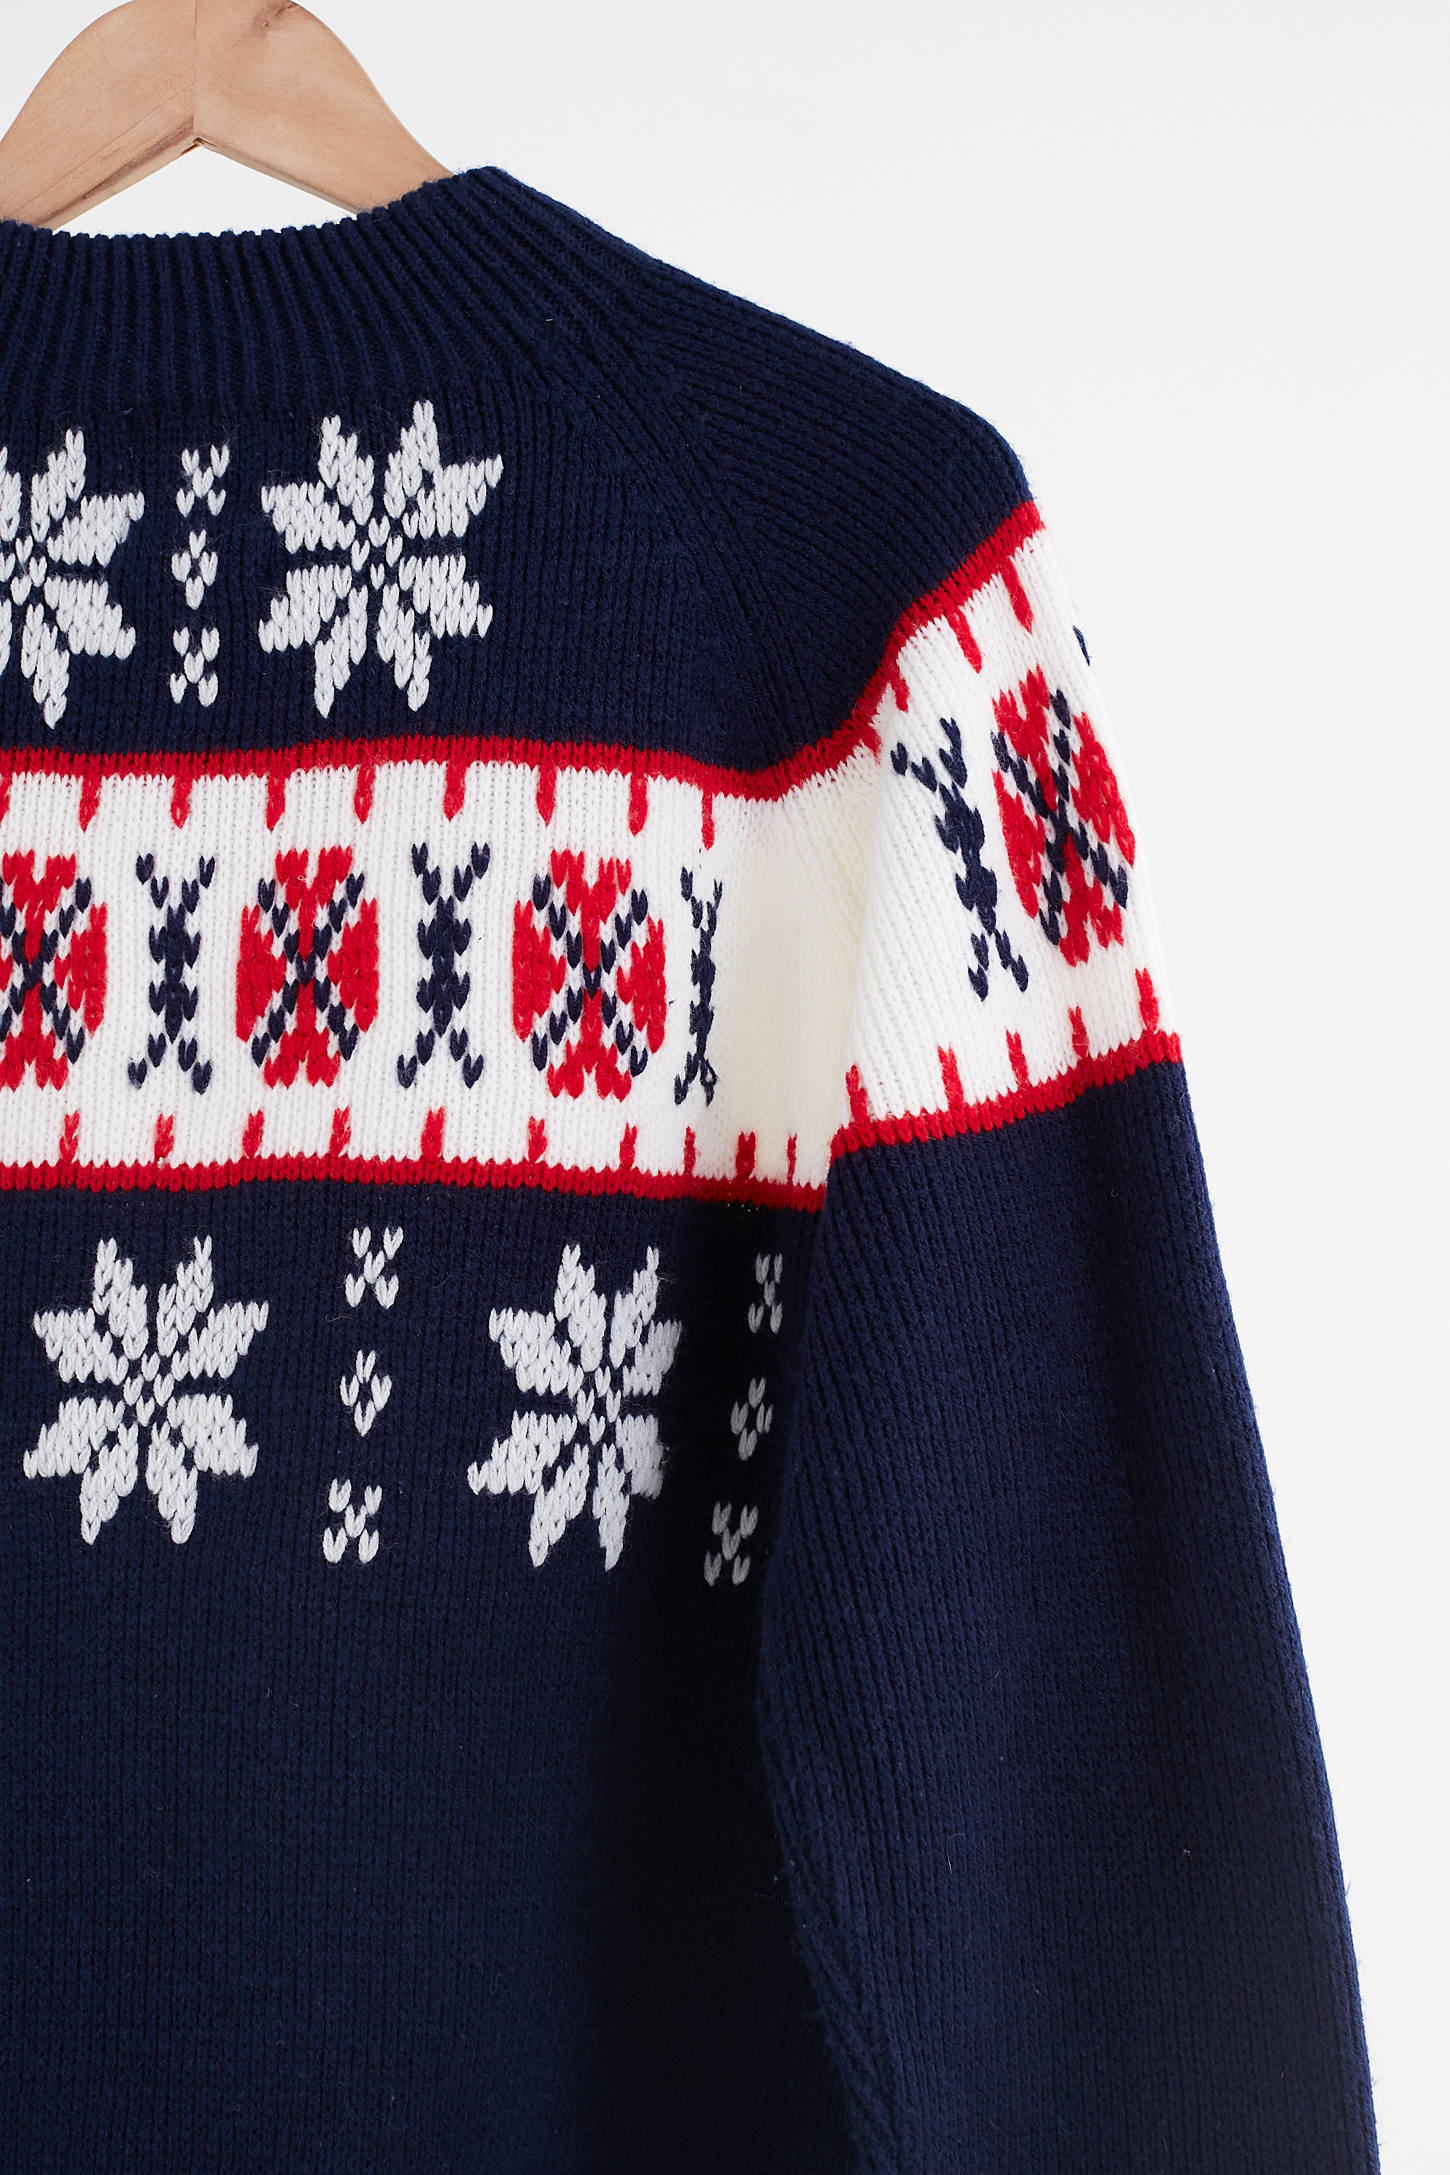 Vintage Navy Blue Fair Isle Ski Sweater | Urban Outfitters Canada